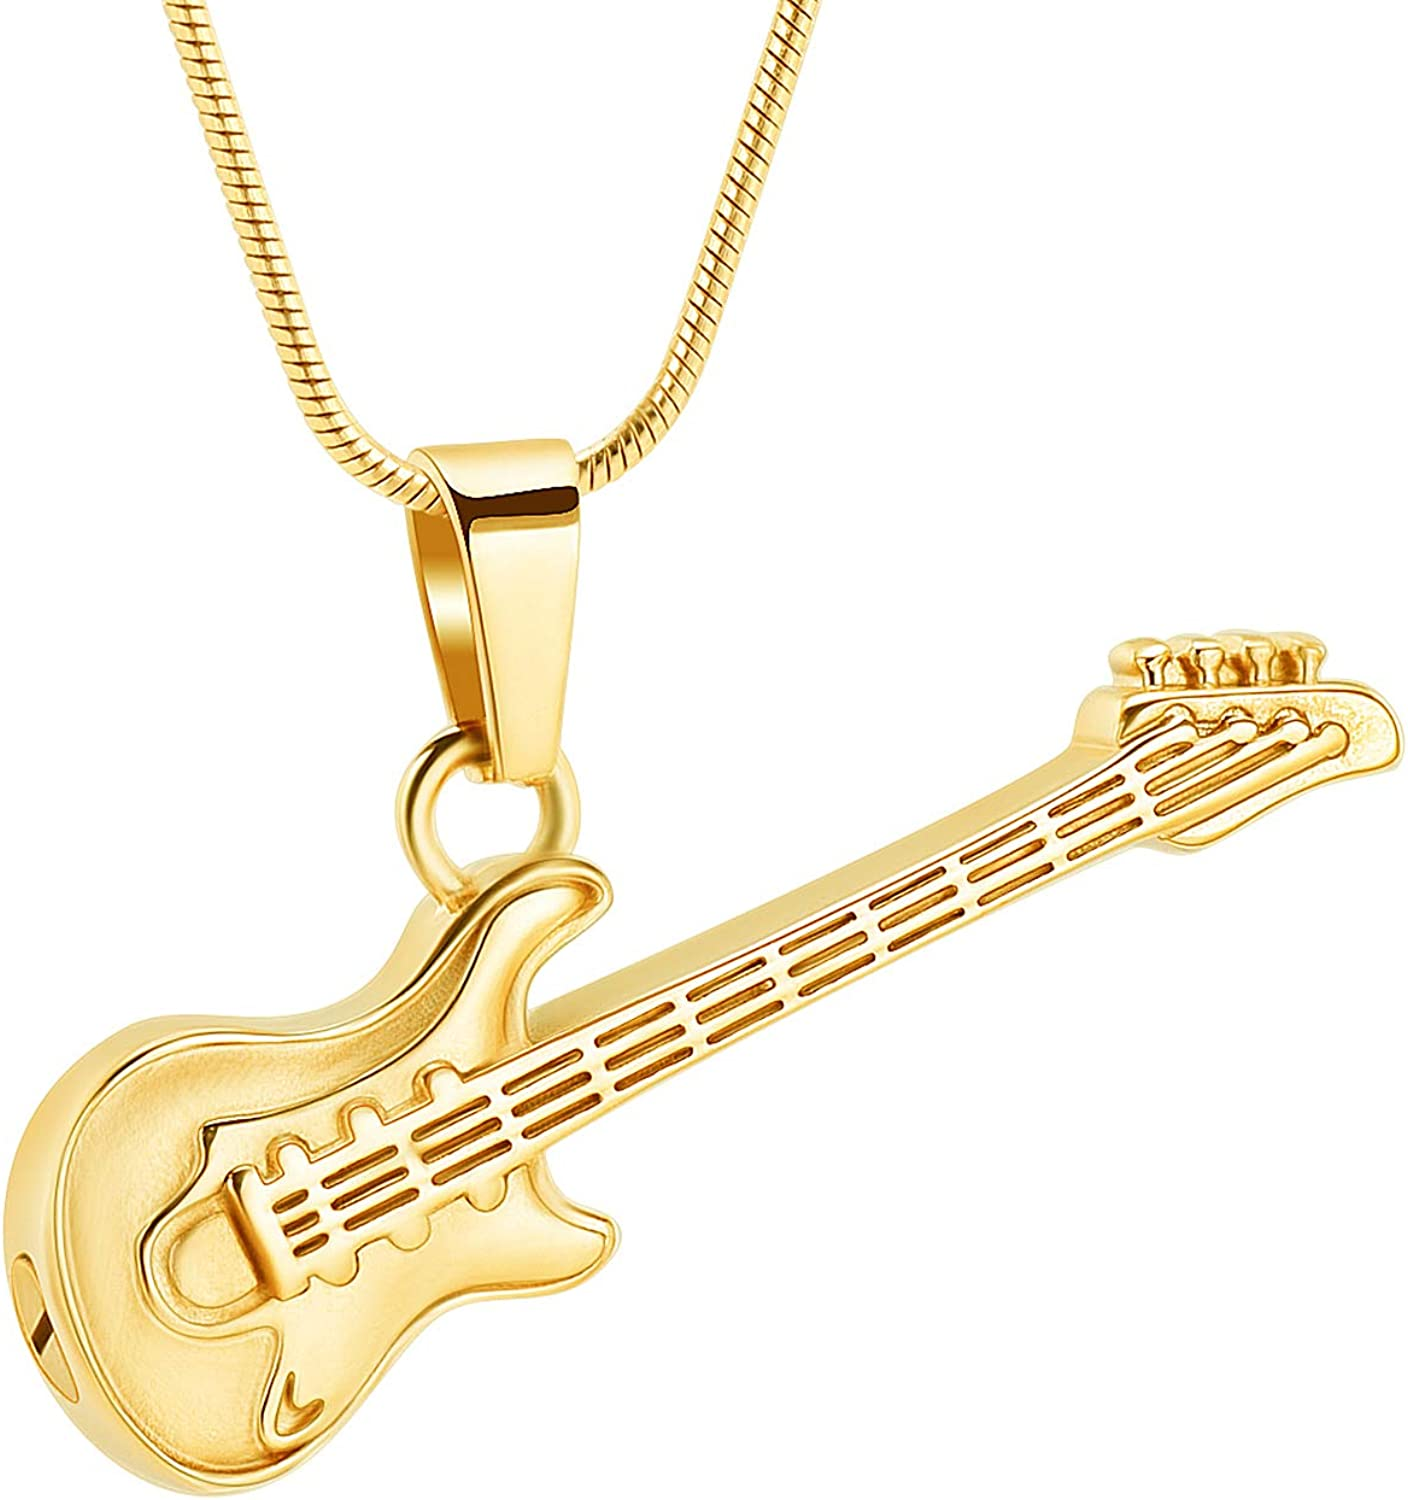 zeqingjw Electronic Guitar Cremation Jewelry Urn Pendant for Ashes Music Instrument Memorial Ashes Necklace Keepsake Jewelry